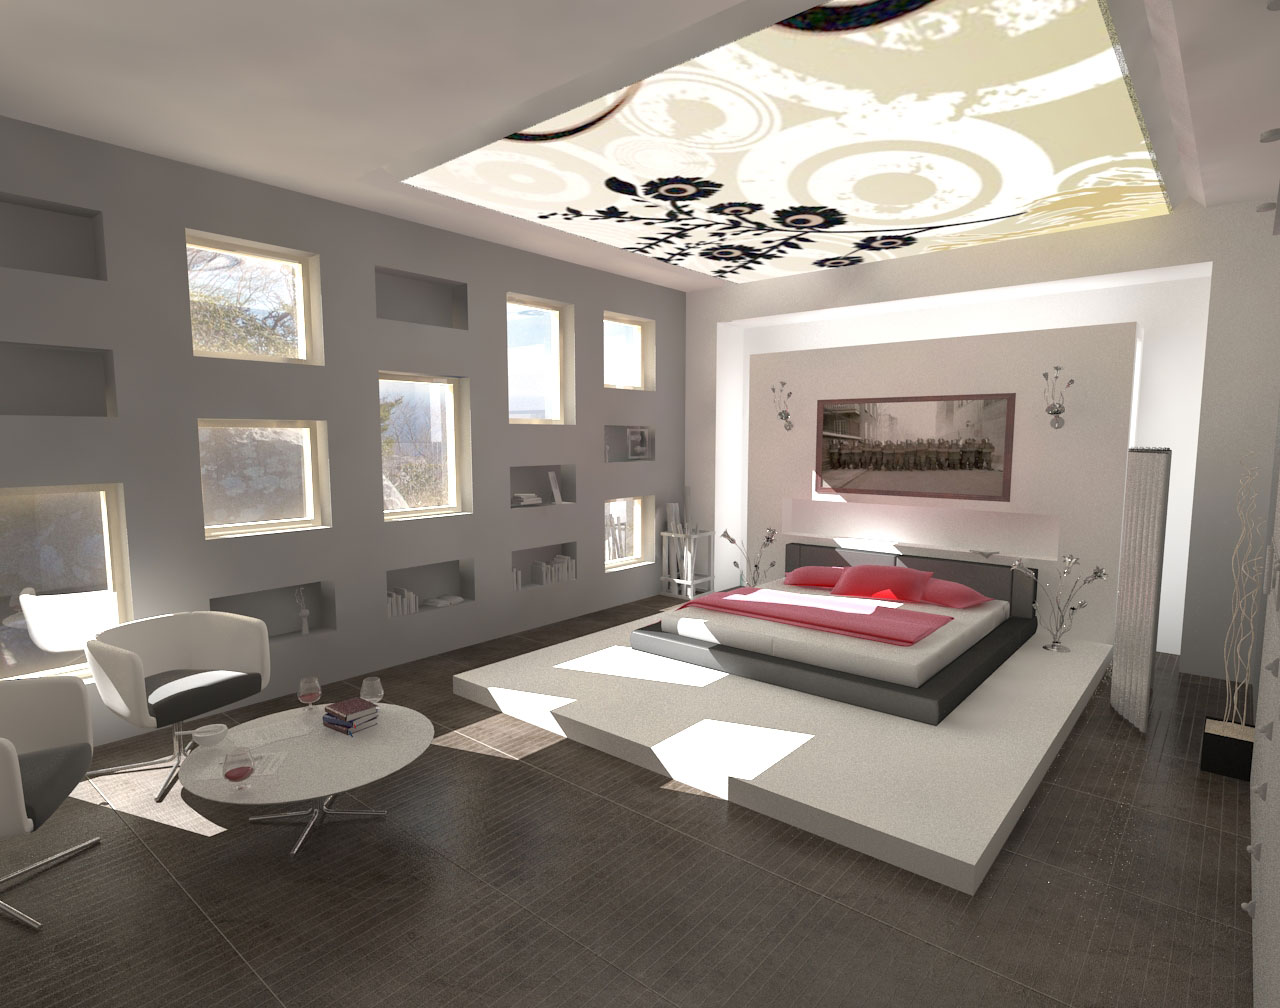 modern bedroom interior design ideas